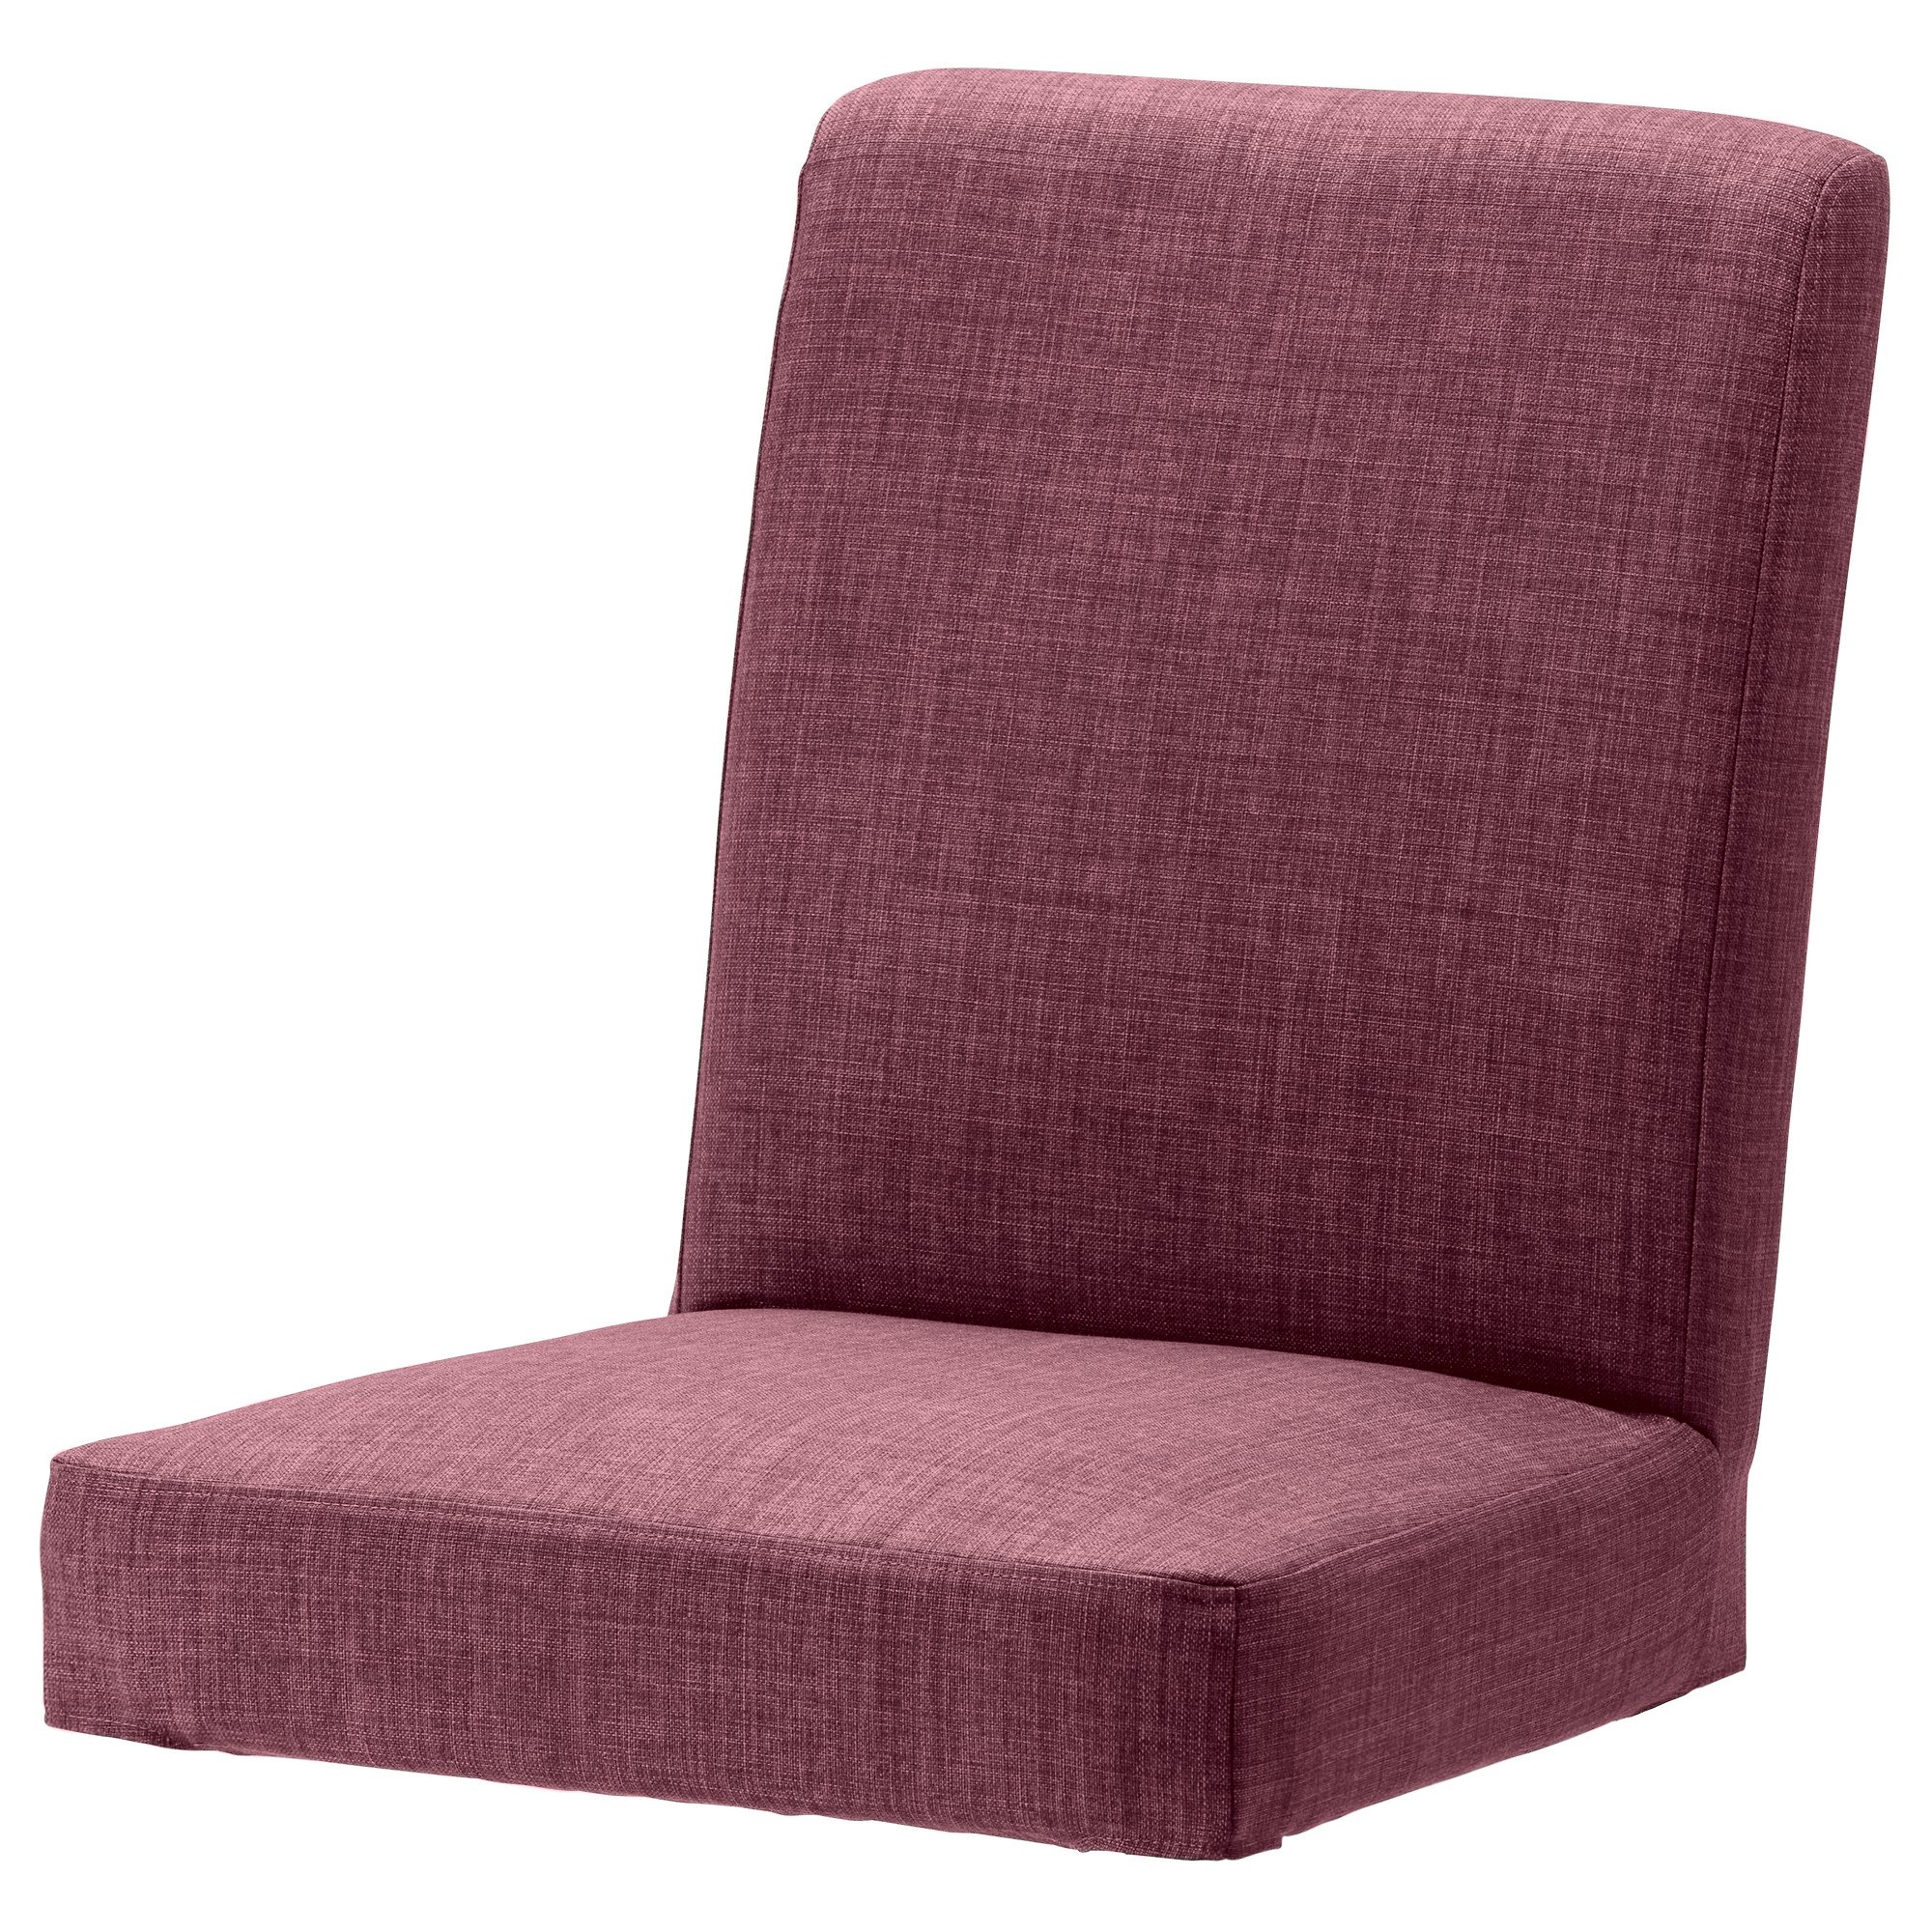 Replacement Slip Cover for Ikea Henriksdal Dining Chairs  : 0269367PE407043S5purple from www.ebay.co.uk size 2000 x 2000 jpeg 2426kB